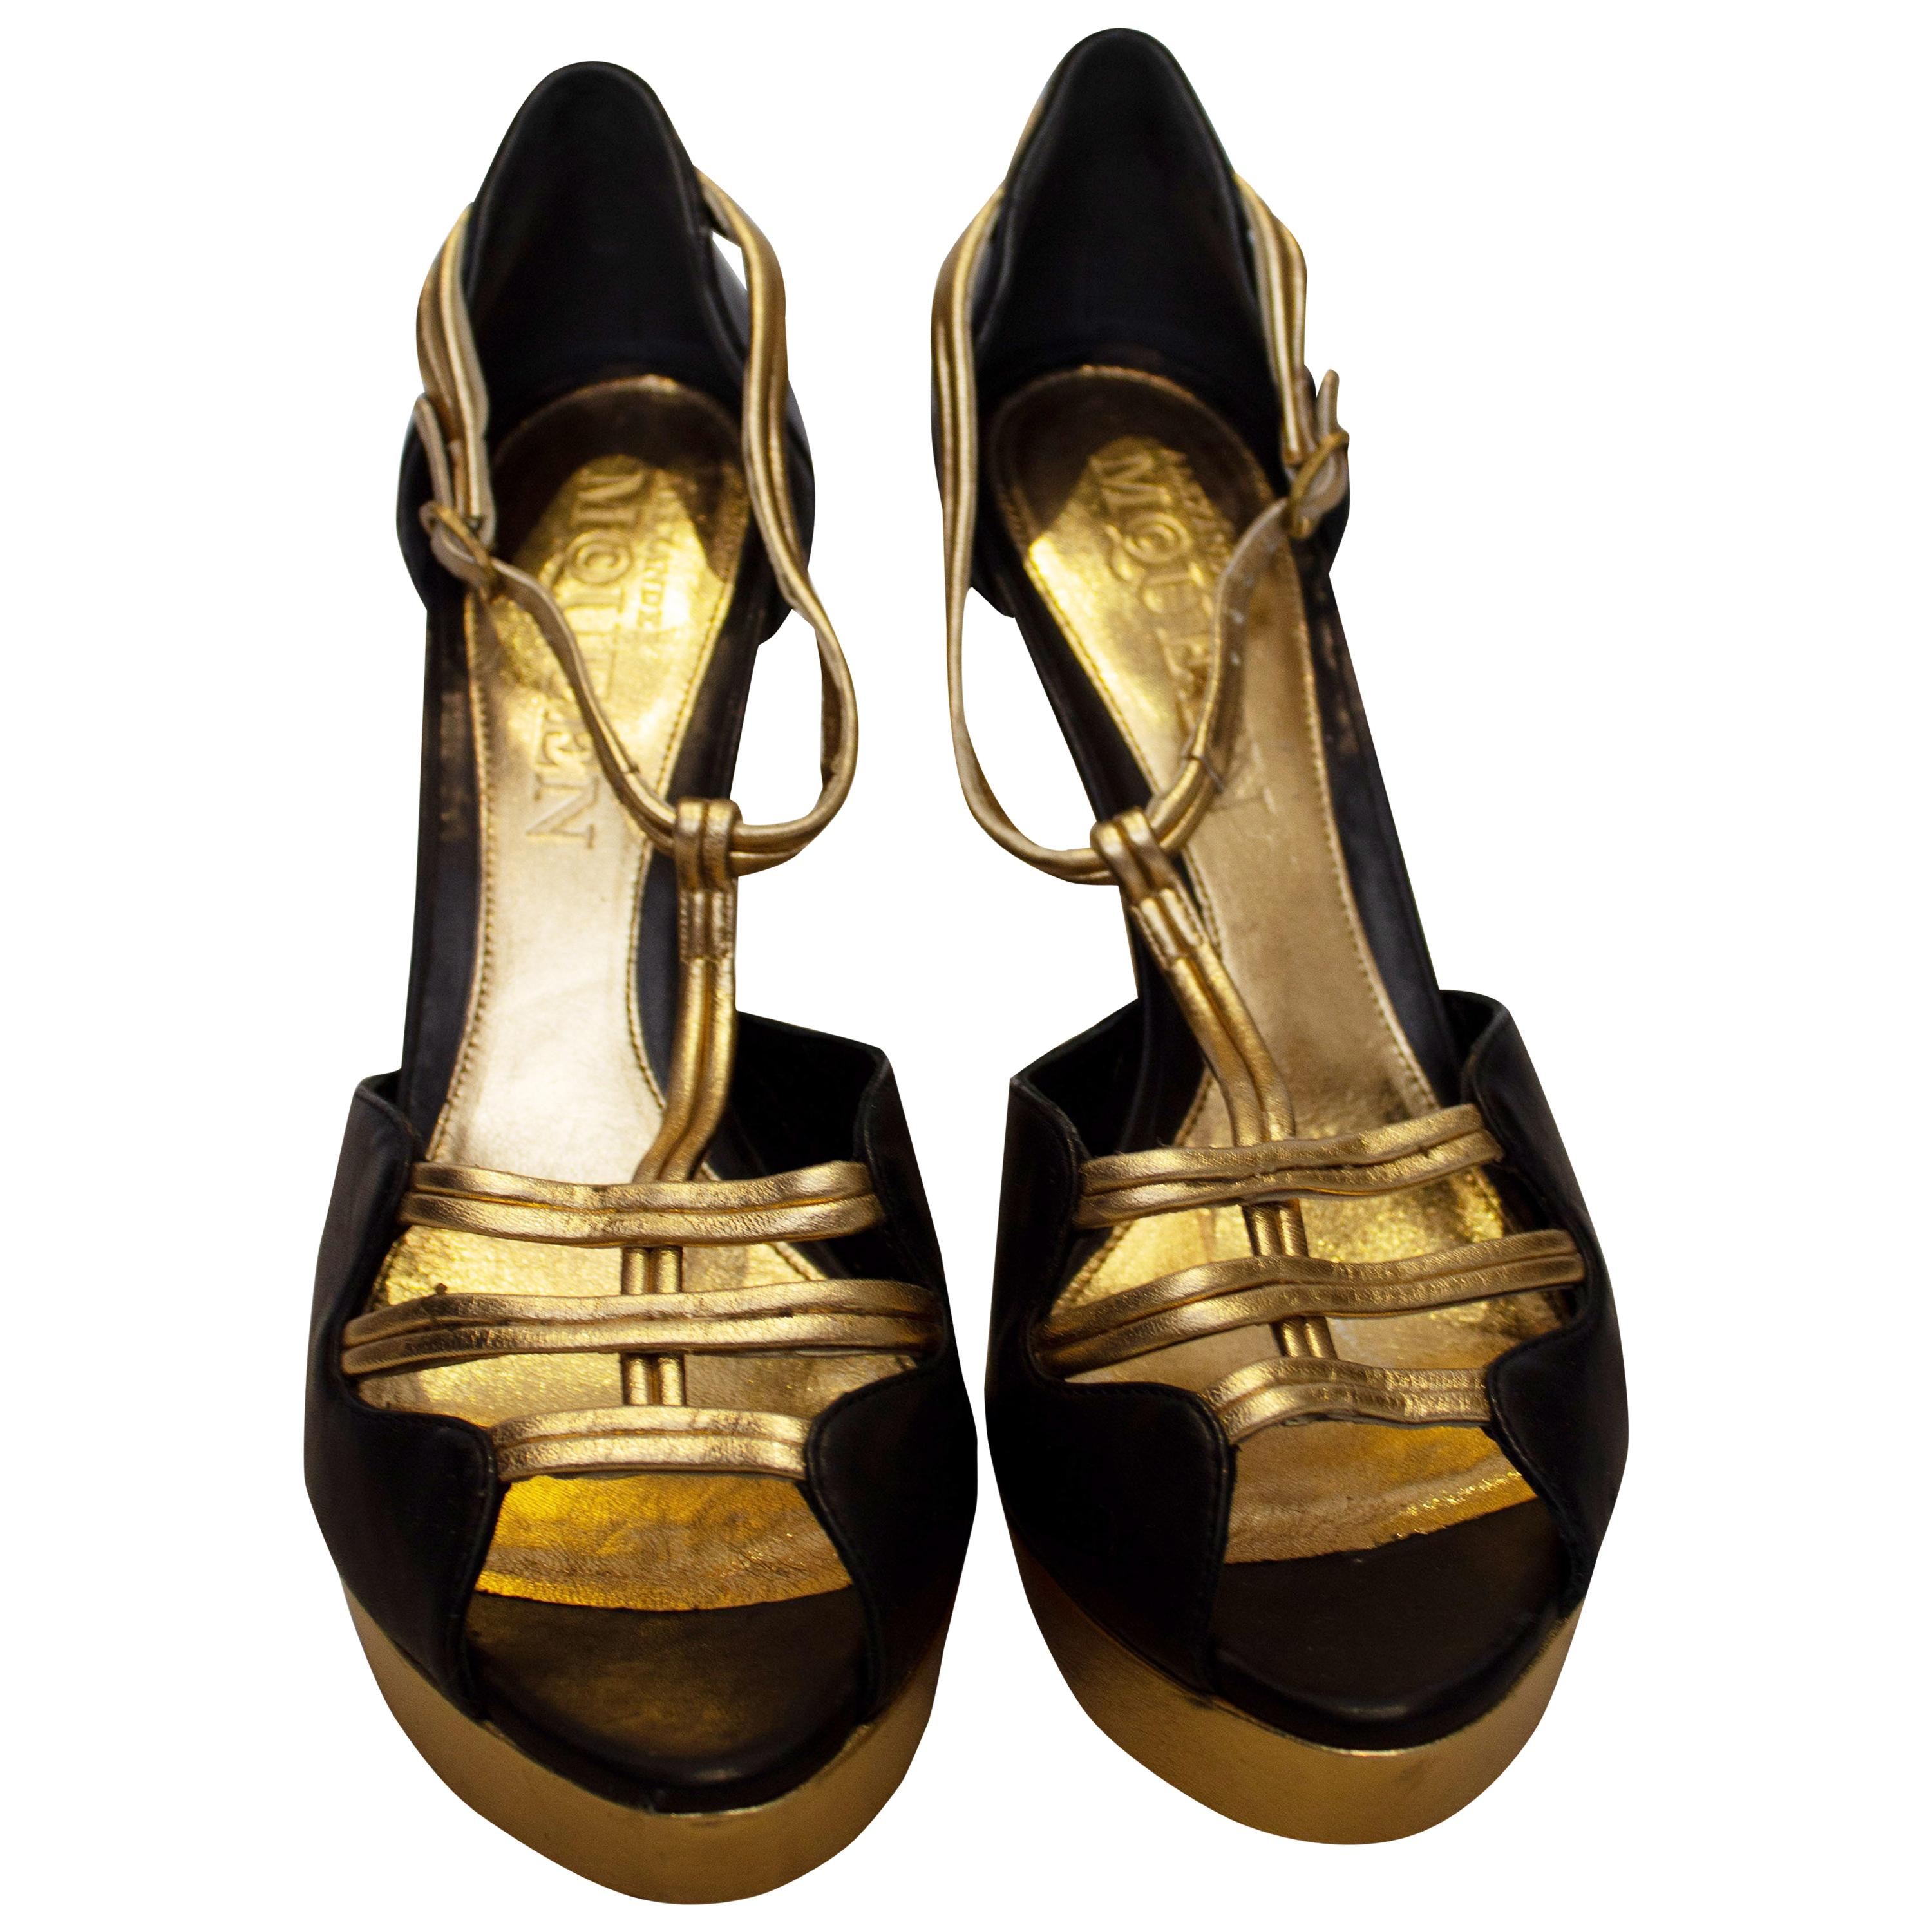 Alexander McQueen Black and Gold Shoes